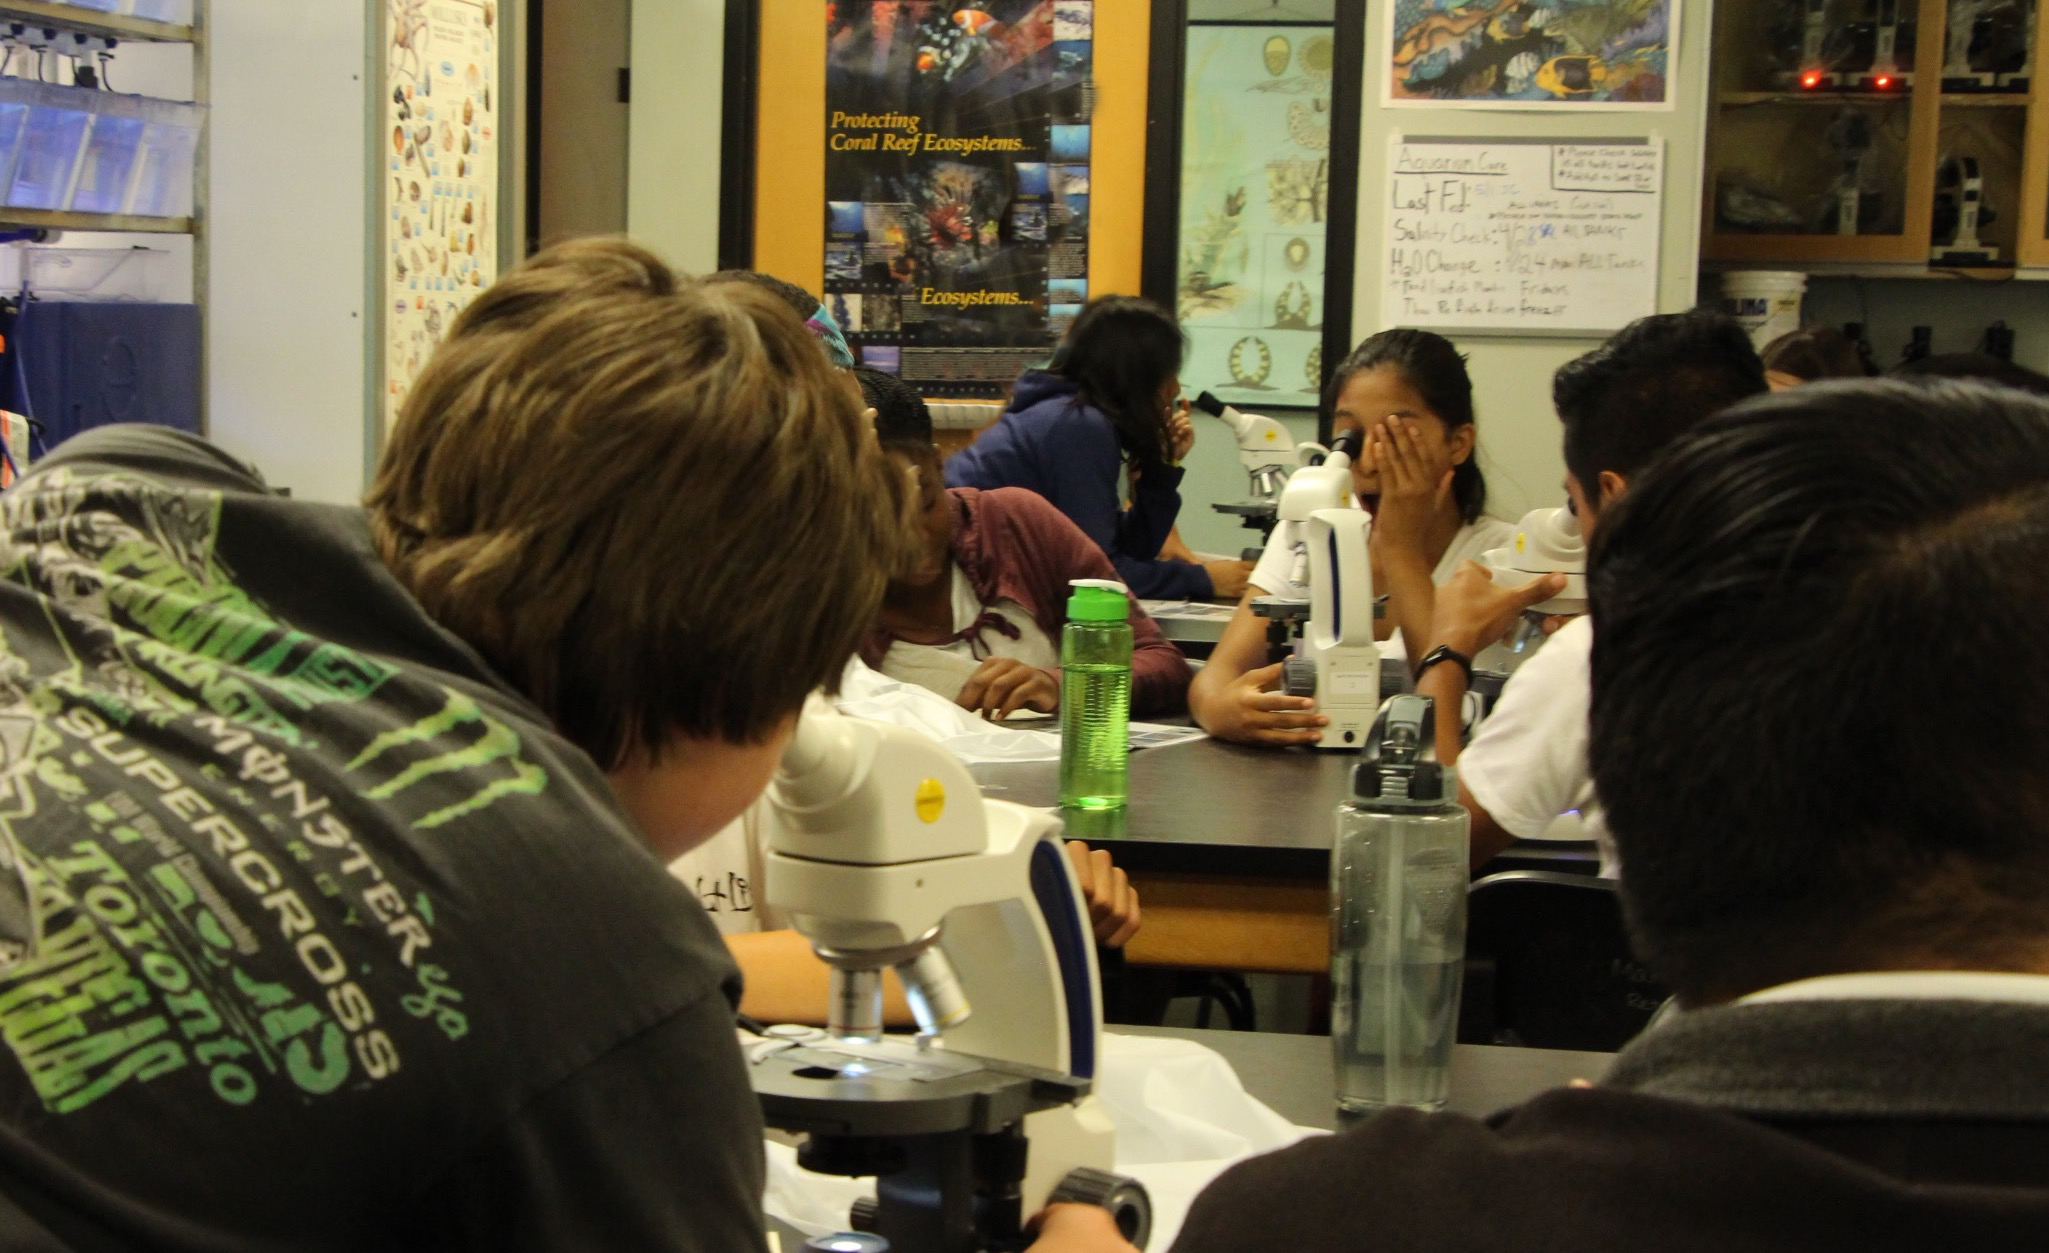 Students looking through microscopes in science class.